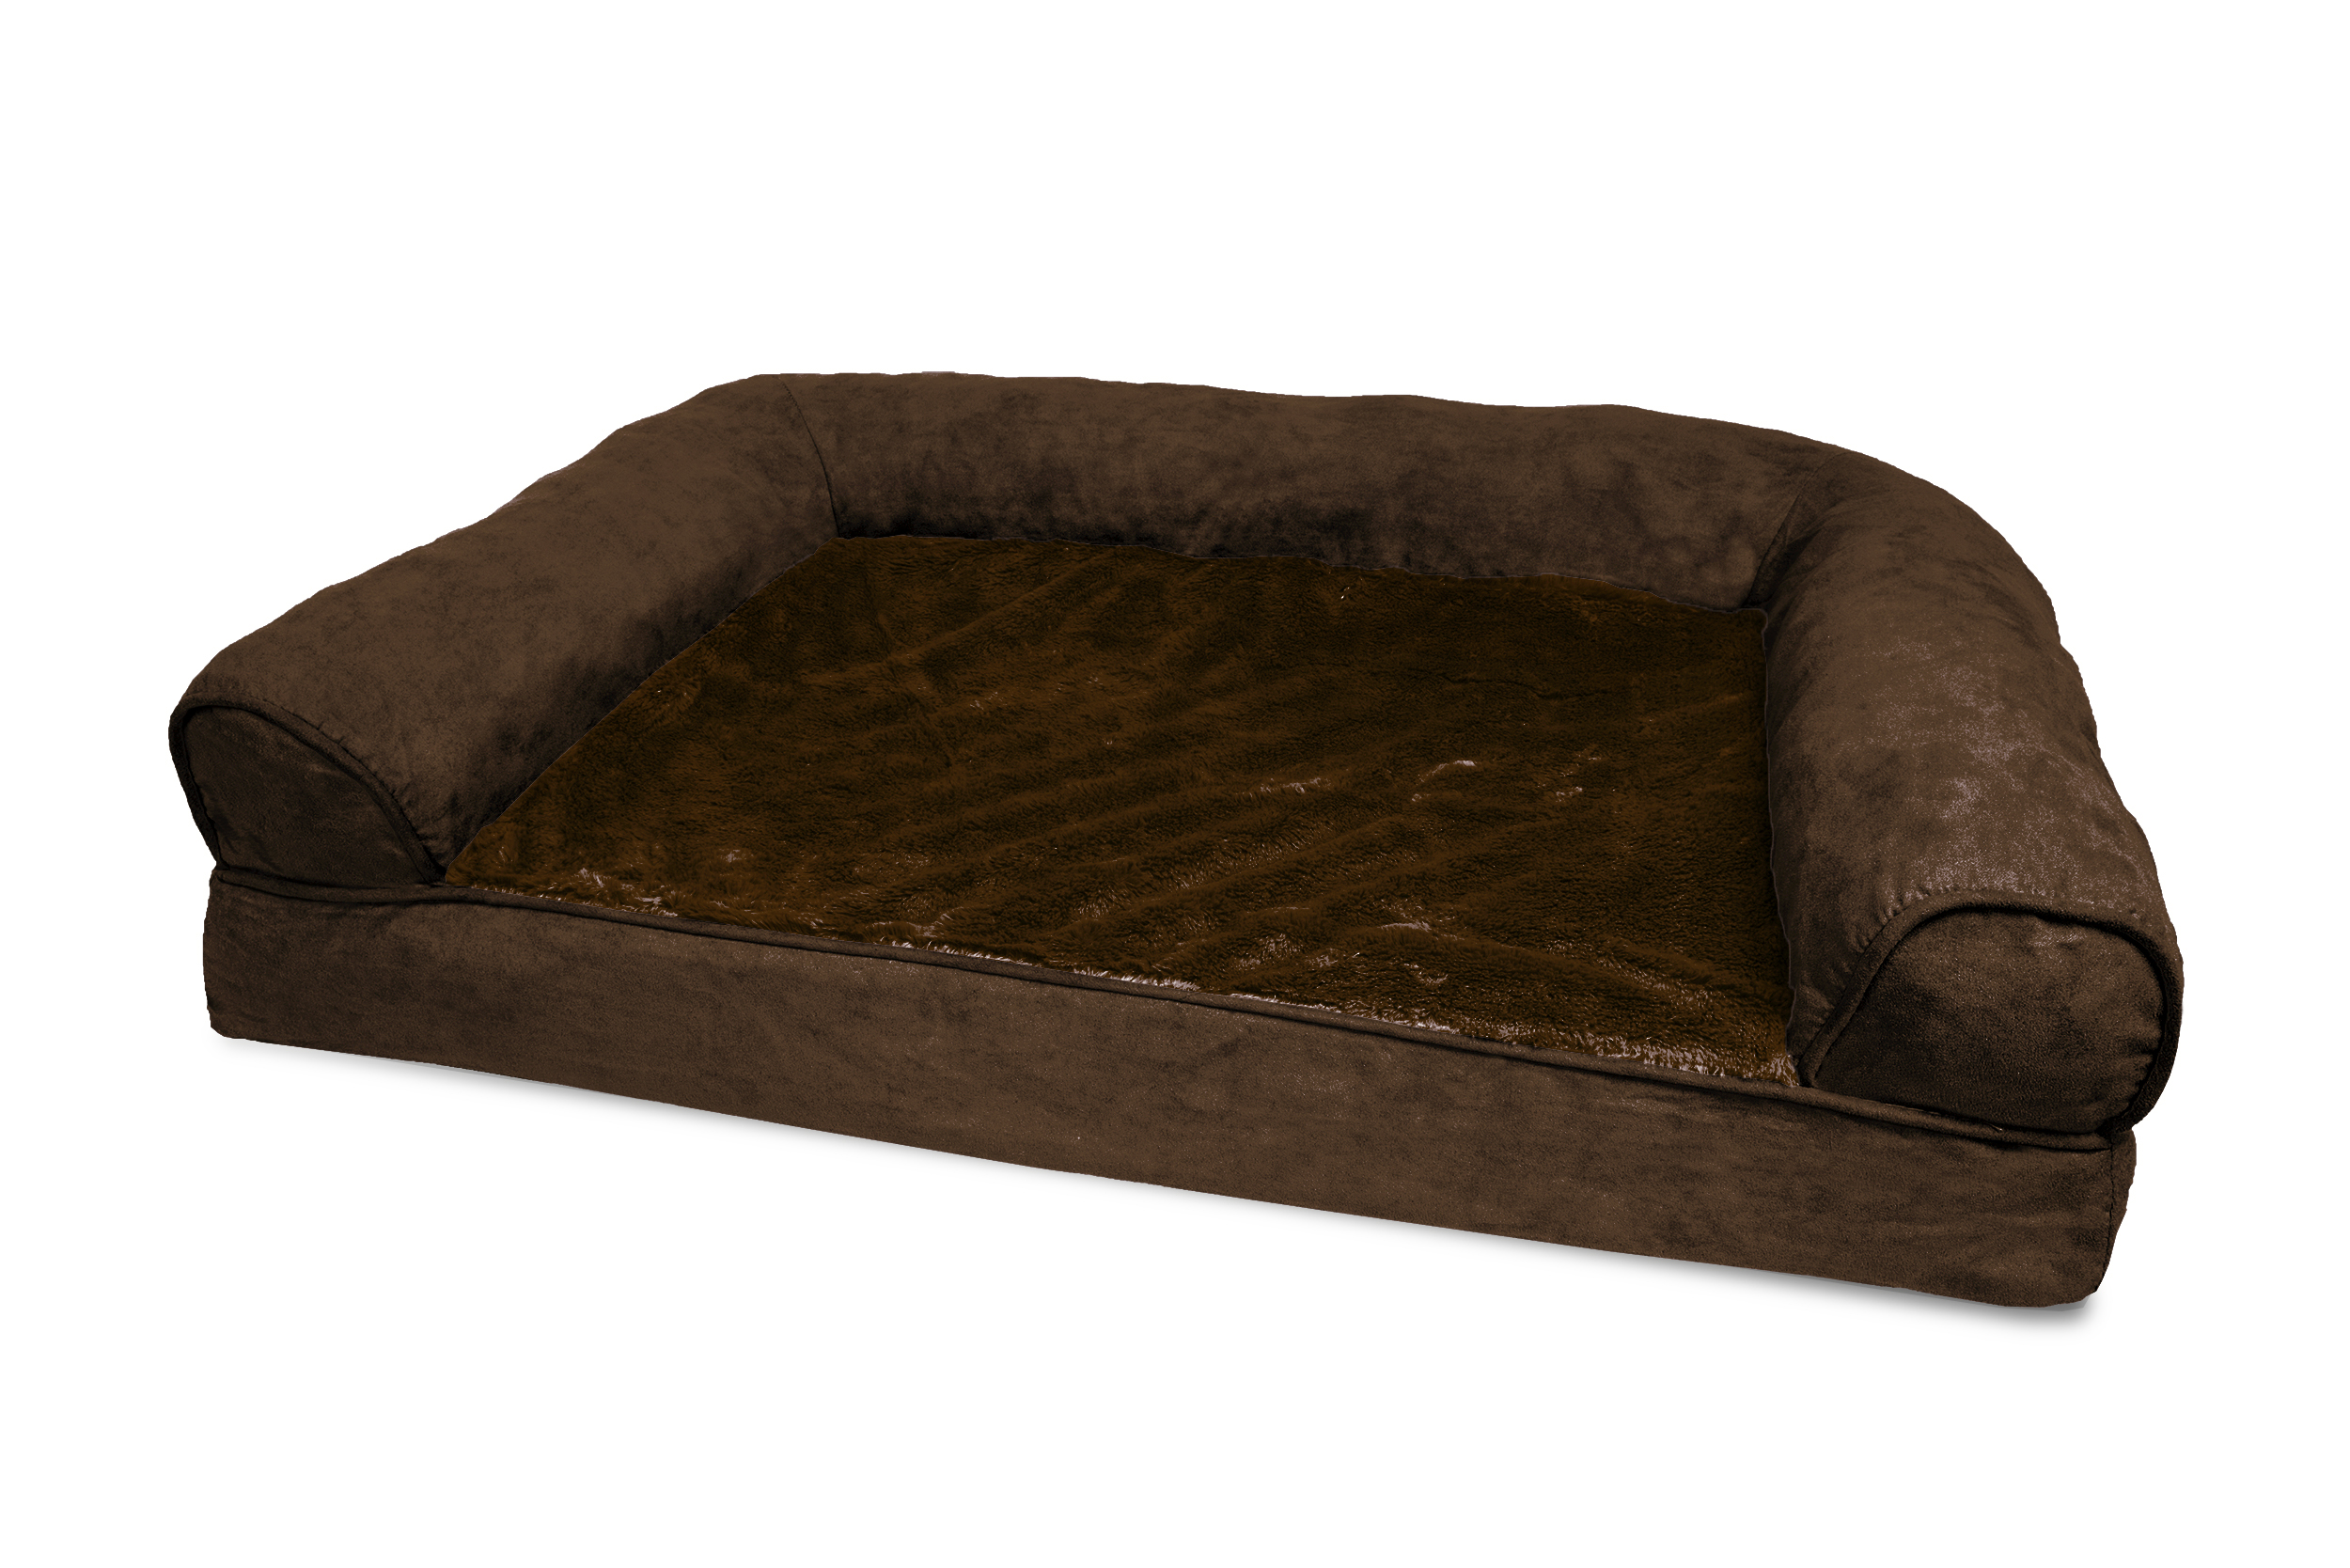 choc furniture kika bed sofa beds pet large big dog couch